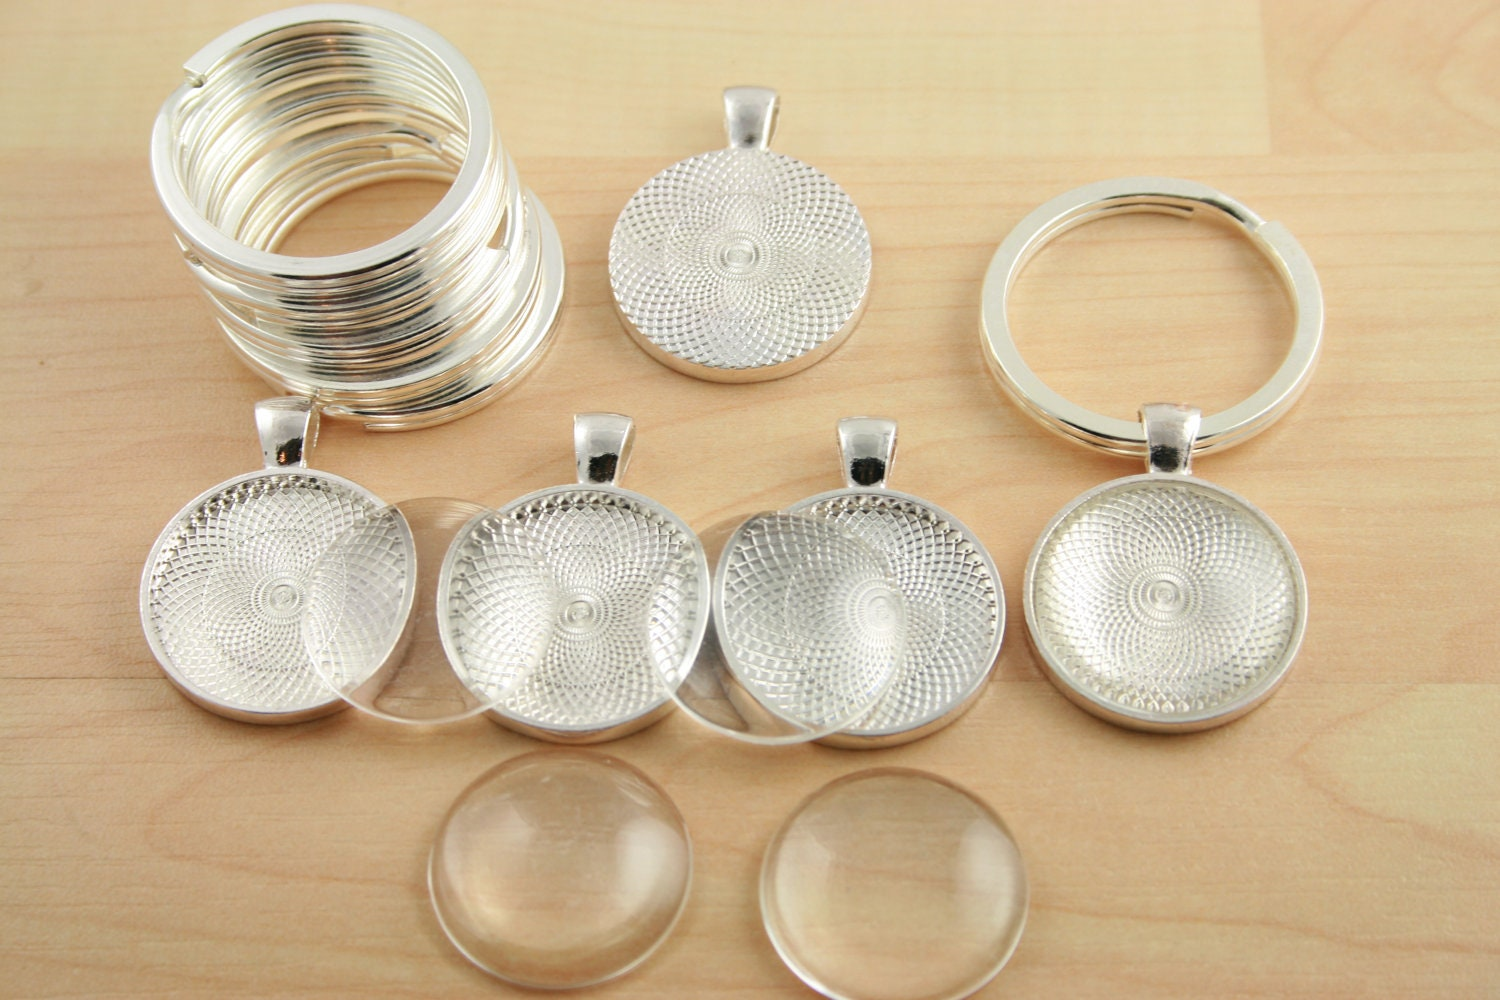 30 key ring making sets blank 1 inch round pendant trays glass 30 key ring making sets blank 1 inch round pendant trays glass domes large split rings 1 inch silver photos charms from purplemountainbtq on etsy mozeypictures Choice Image